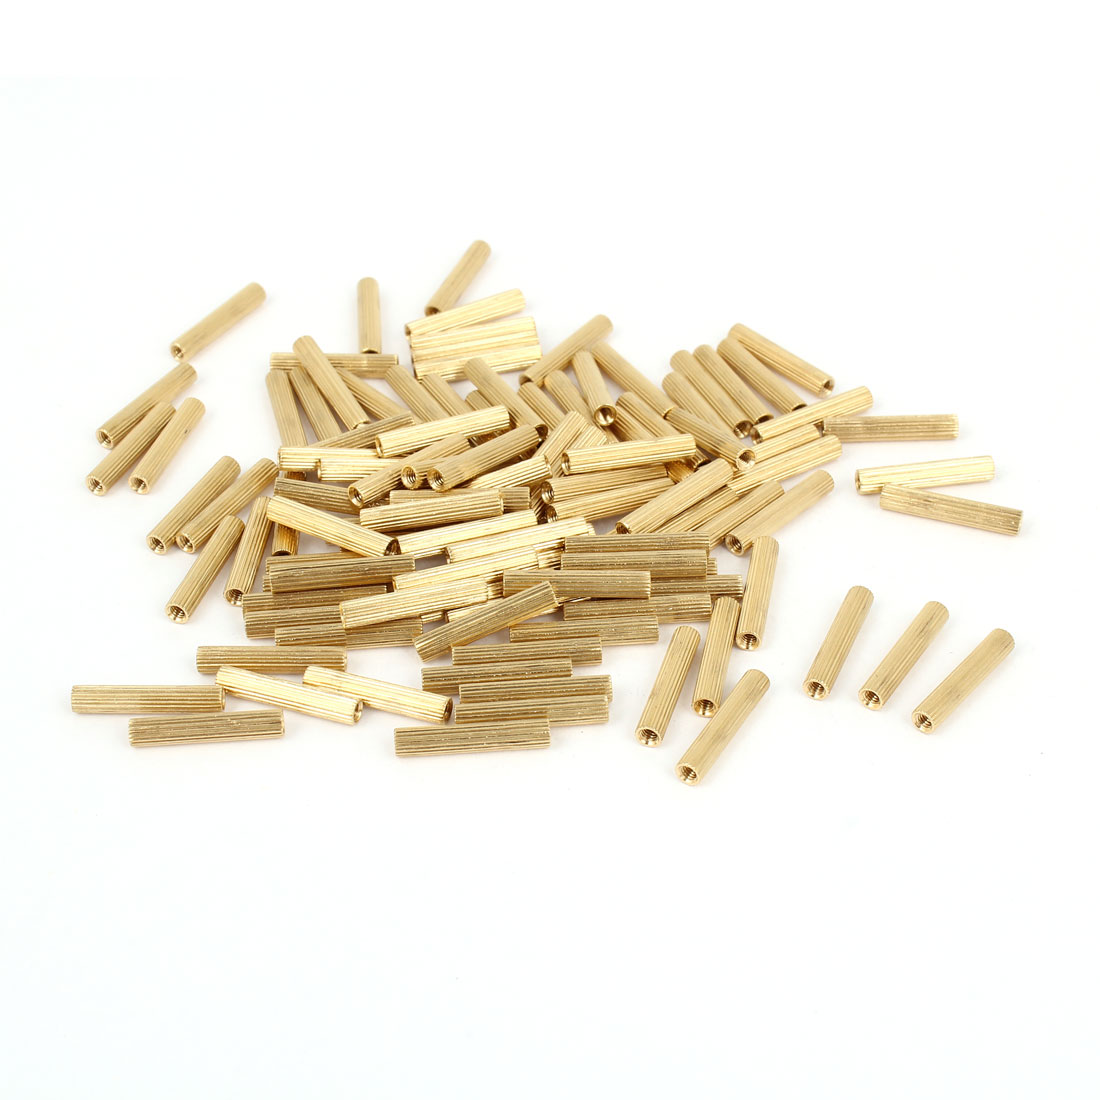 100 Pcs Female Threaded Pillars Brass Standoff Spacer Gold Tone M2x16mm